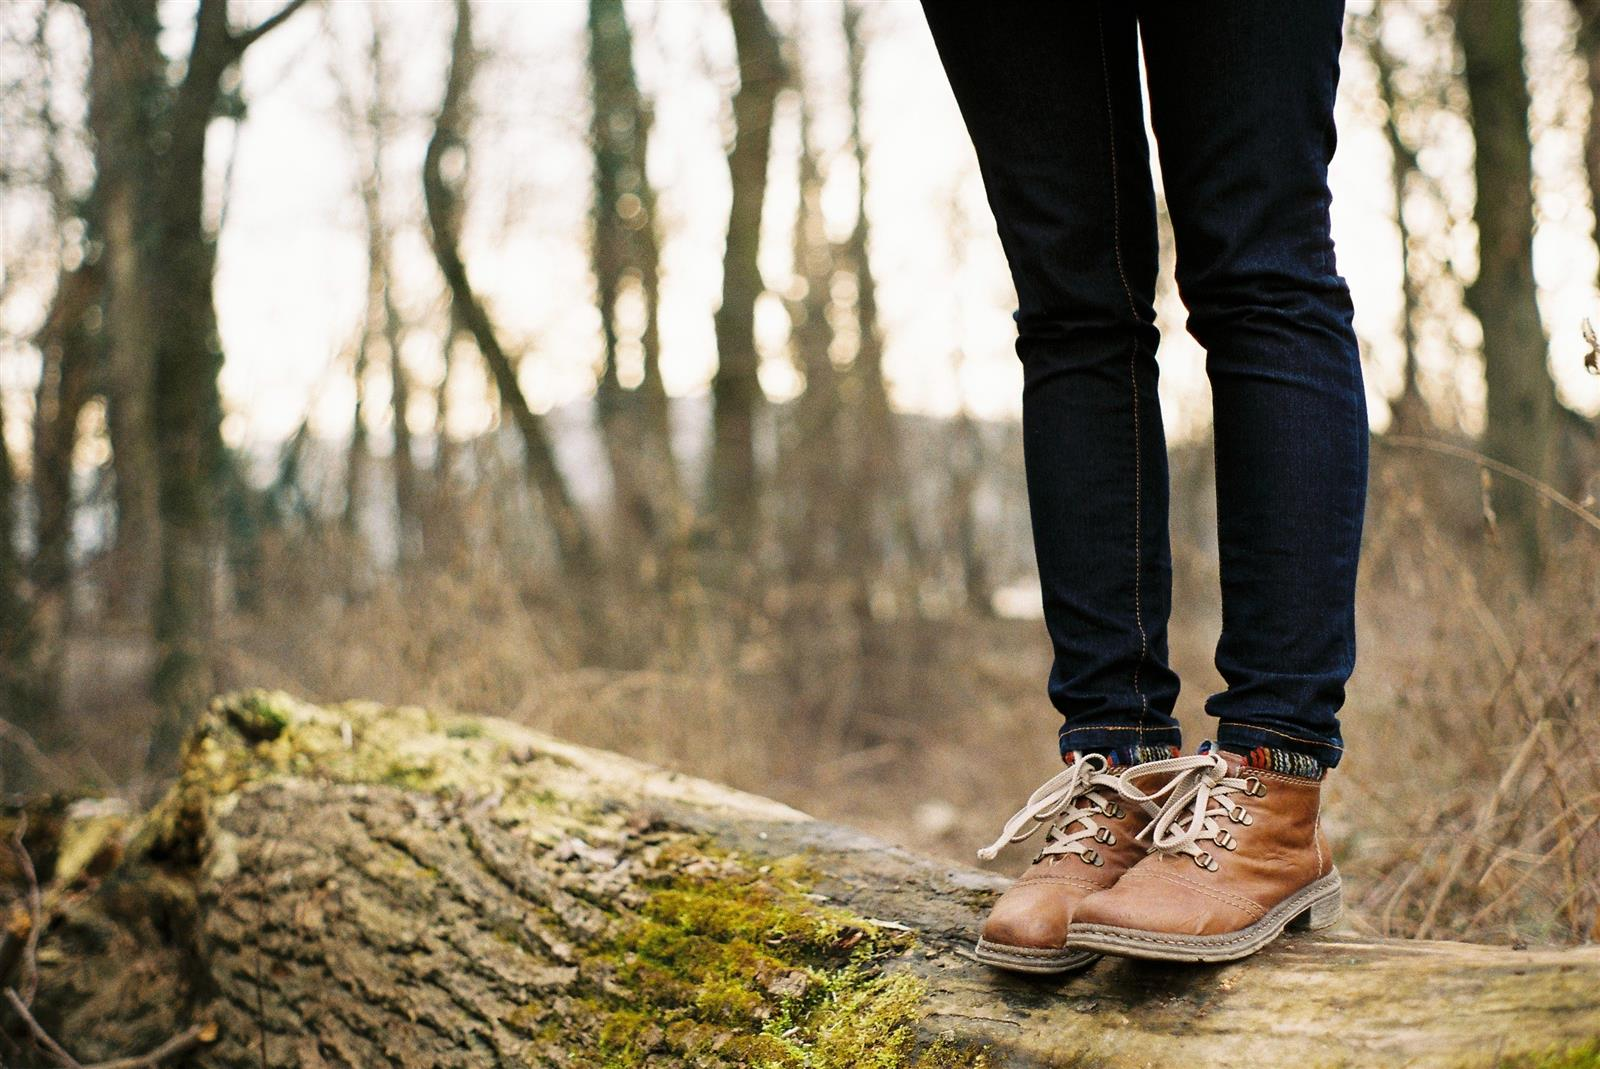 Standing On A Log